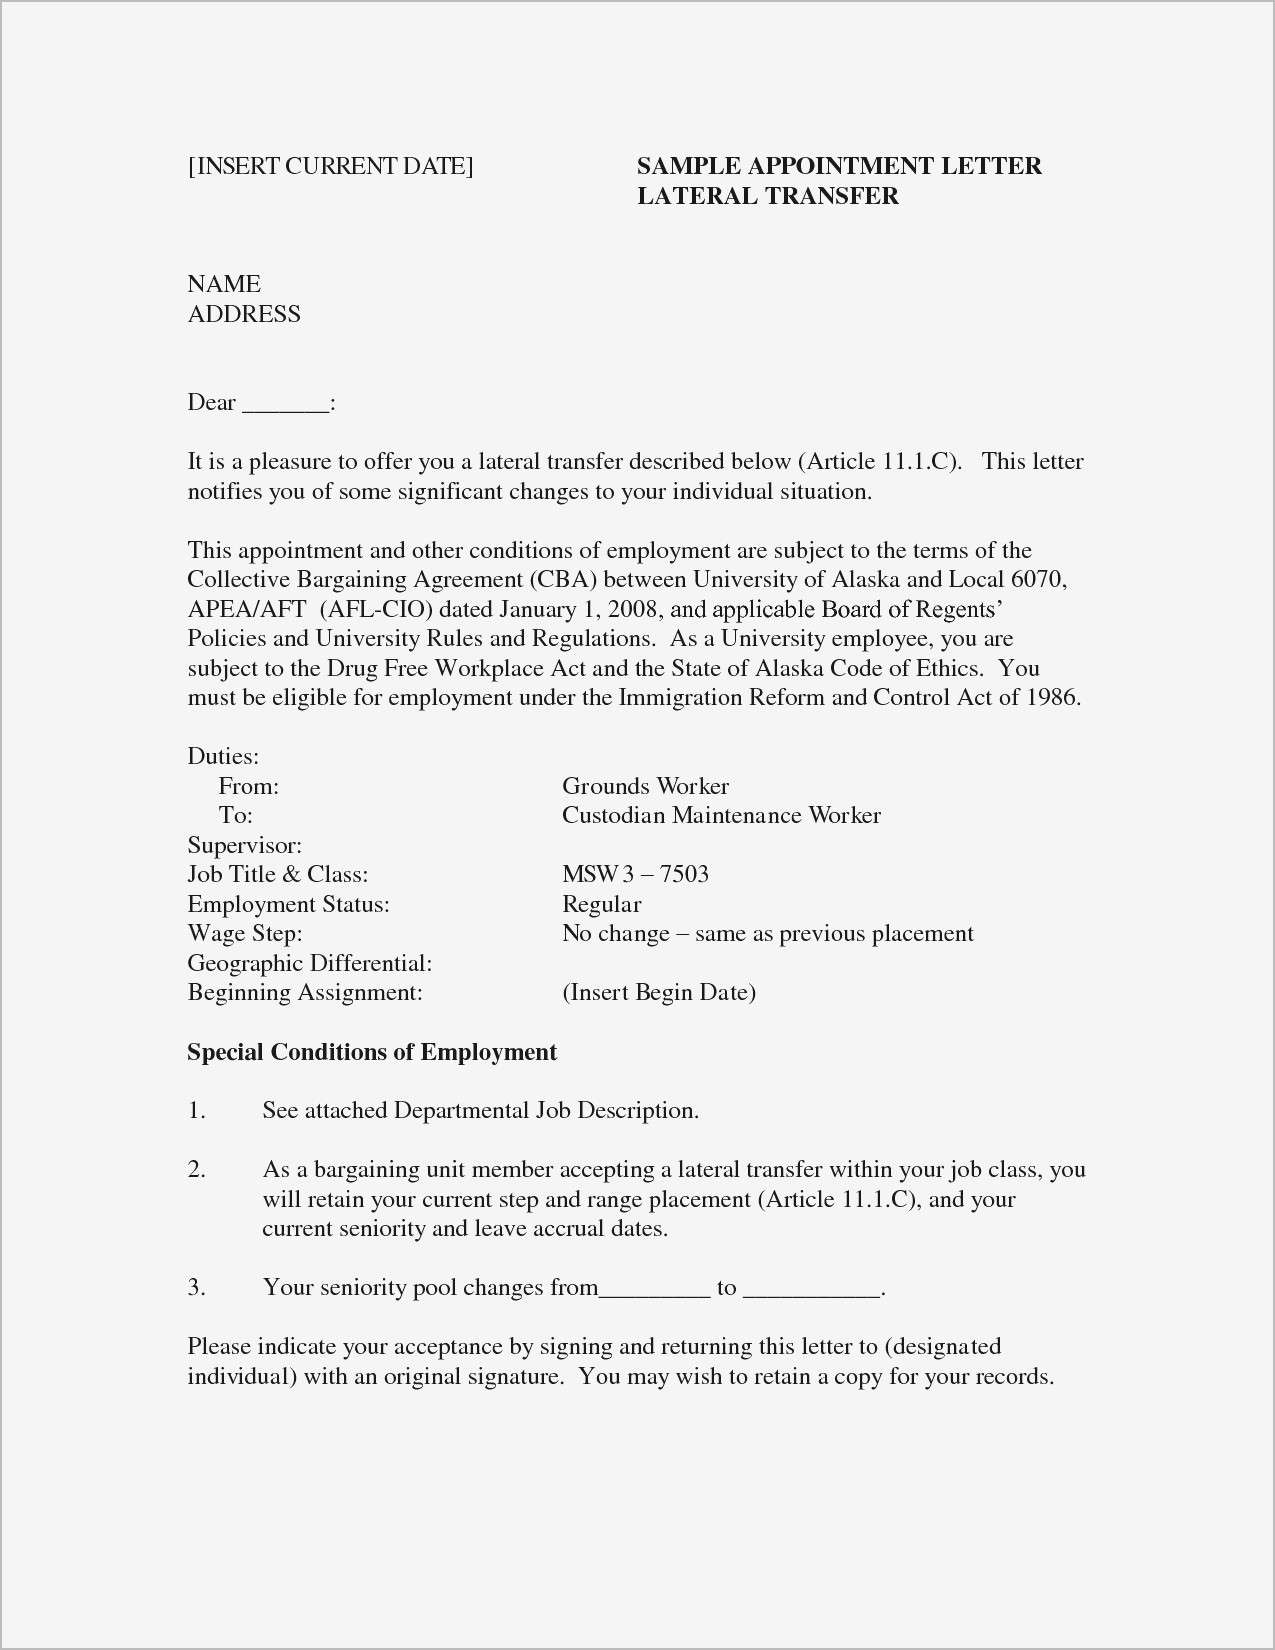 Jimmy Sweeney Cover Letter Template - 15 Carry Jimmy Sweeney Cover Letter Examples Ringer Mxqzuml